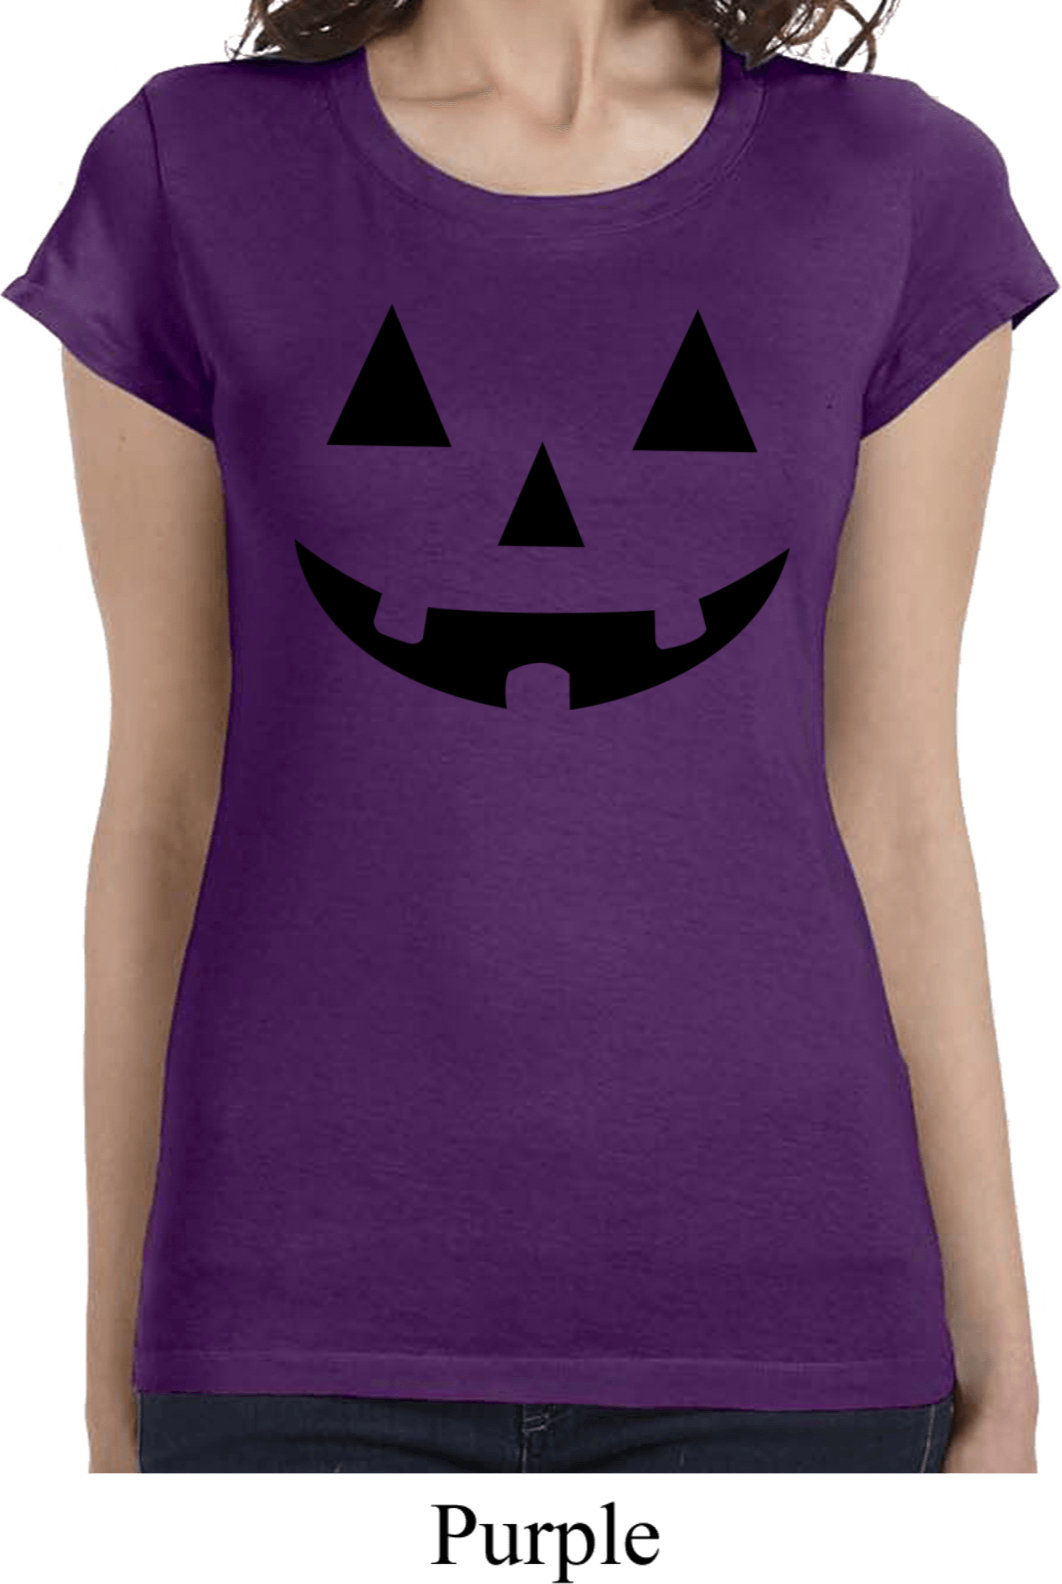 ladies halloween shirt black jack o lantern longer length tee t shirt black jack o lantern ladies halloween shirts - Halloween Shirts For Ladies